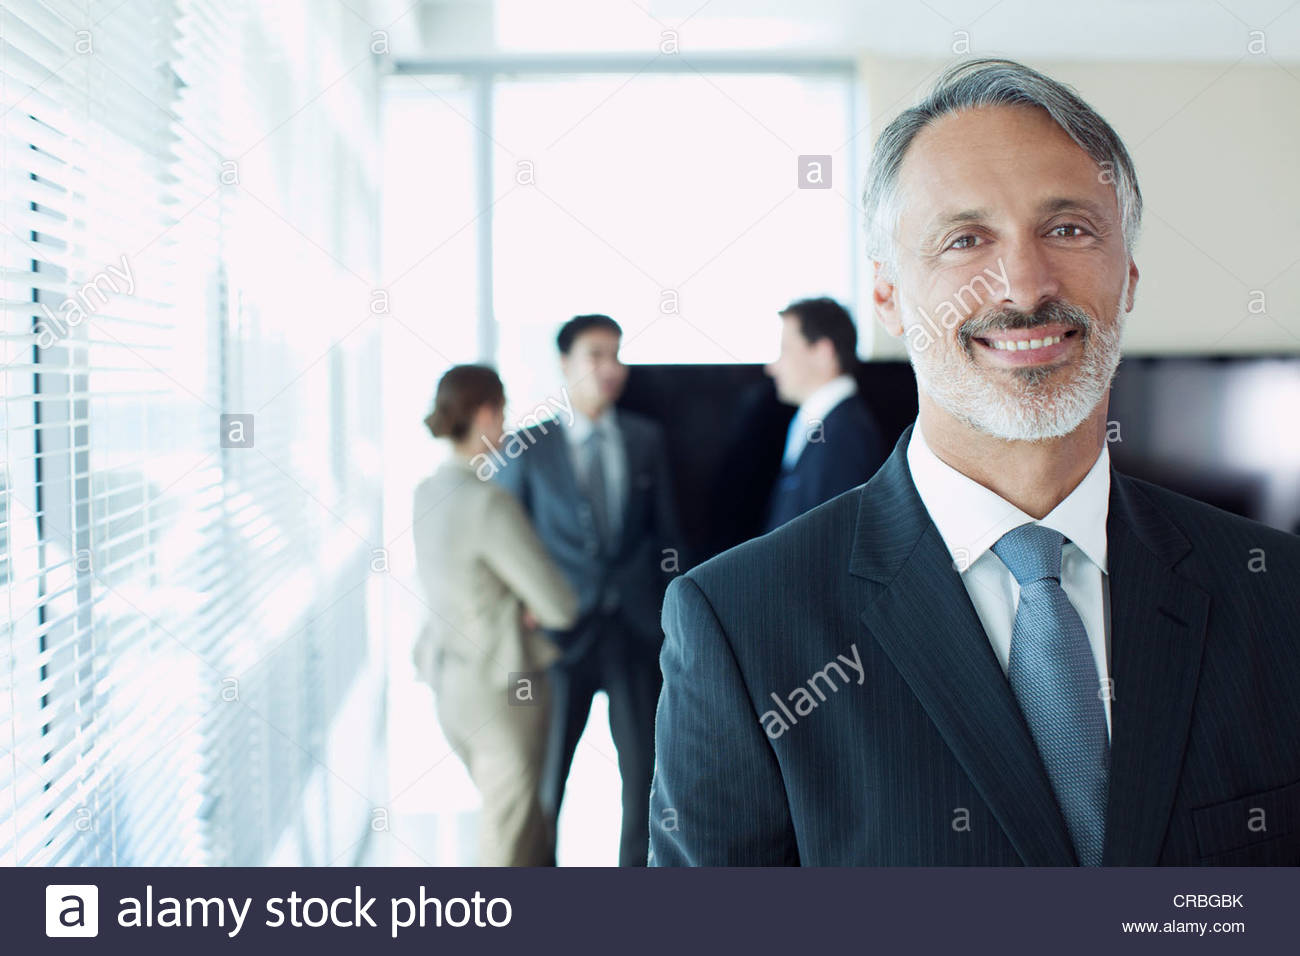 Portrait of smiling businessman with co-workers in background - Stock Image